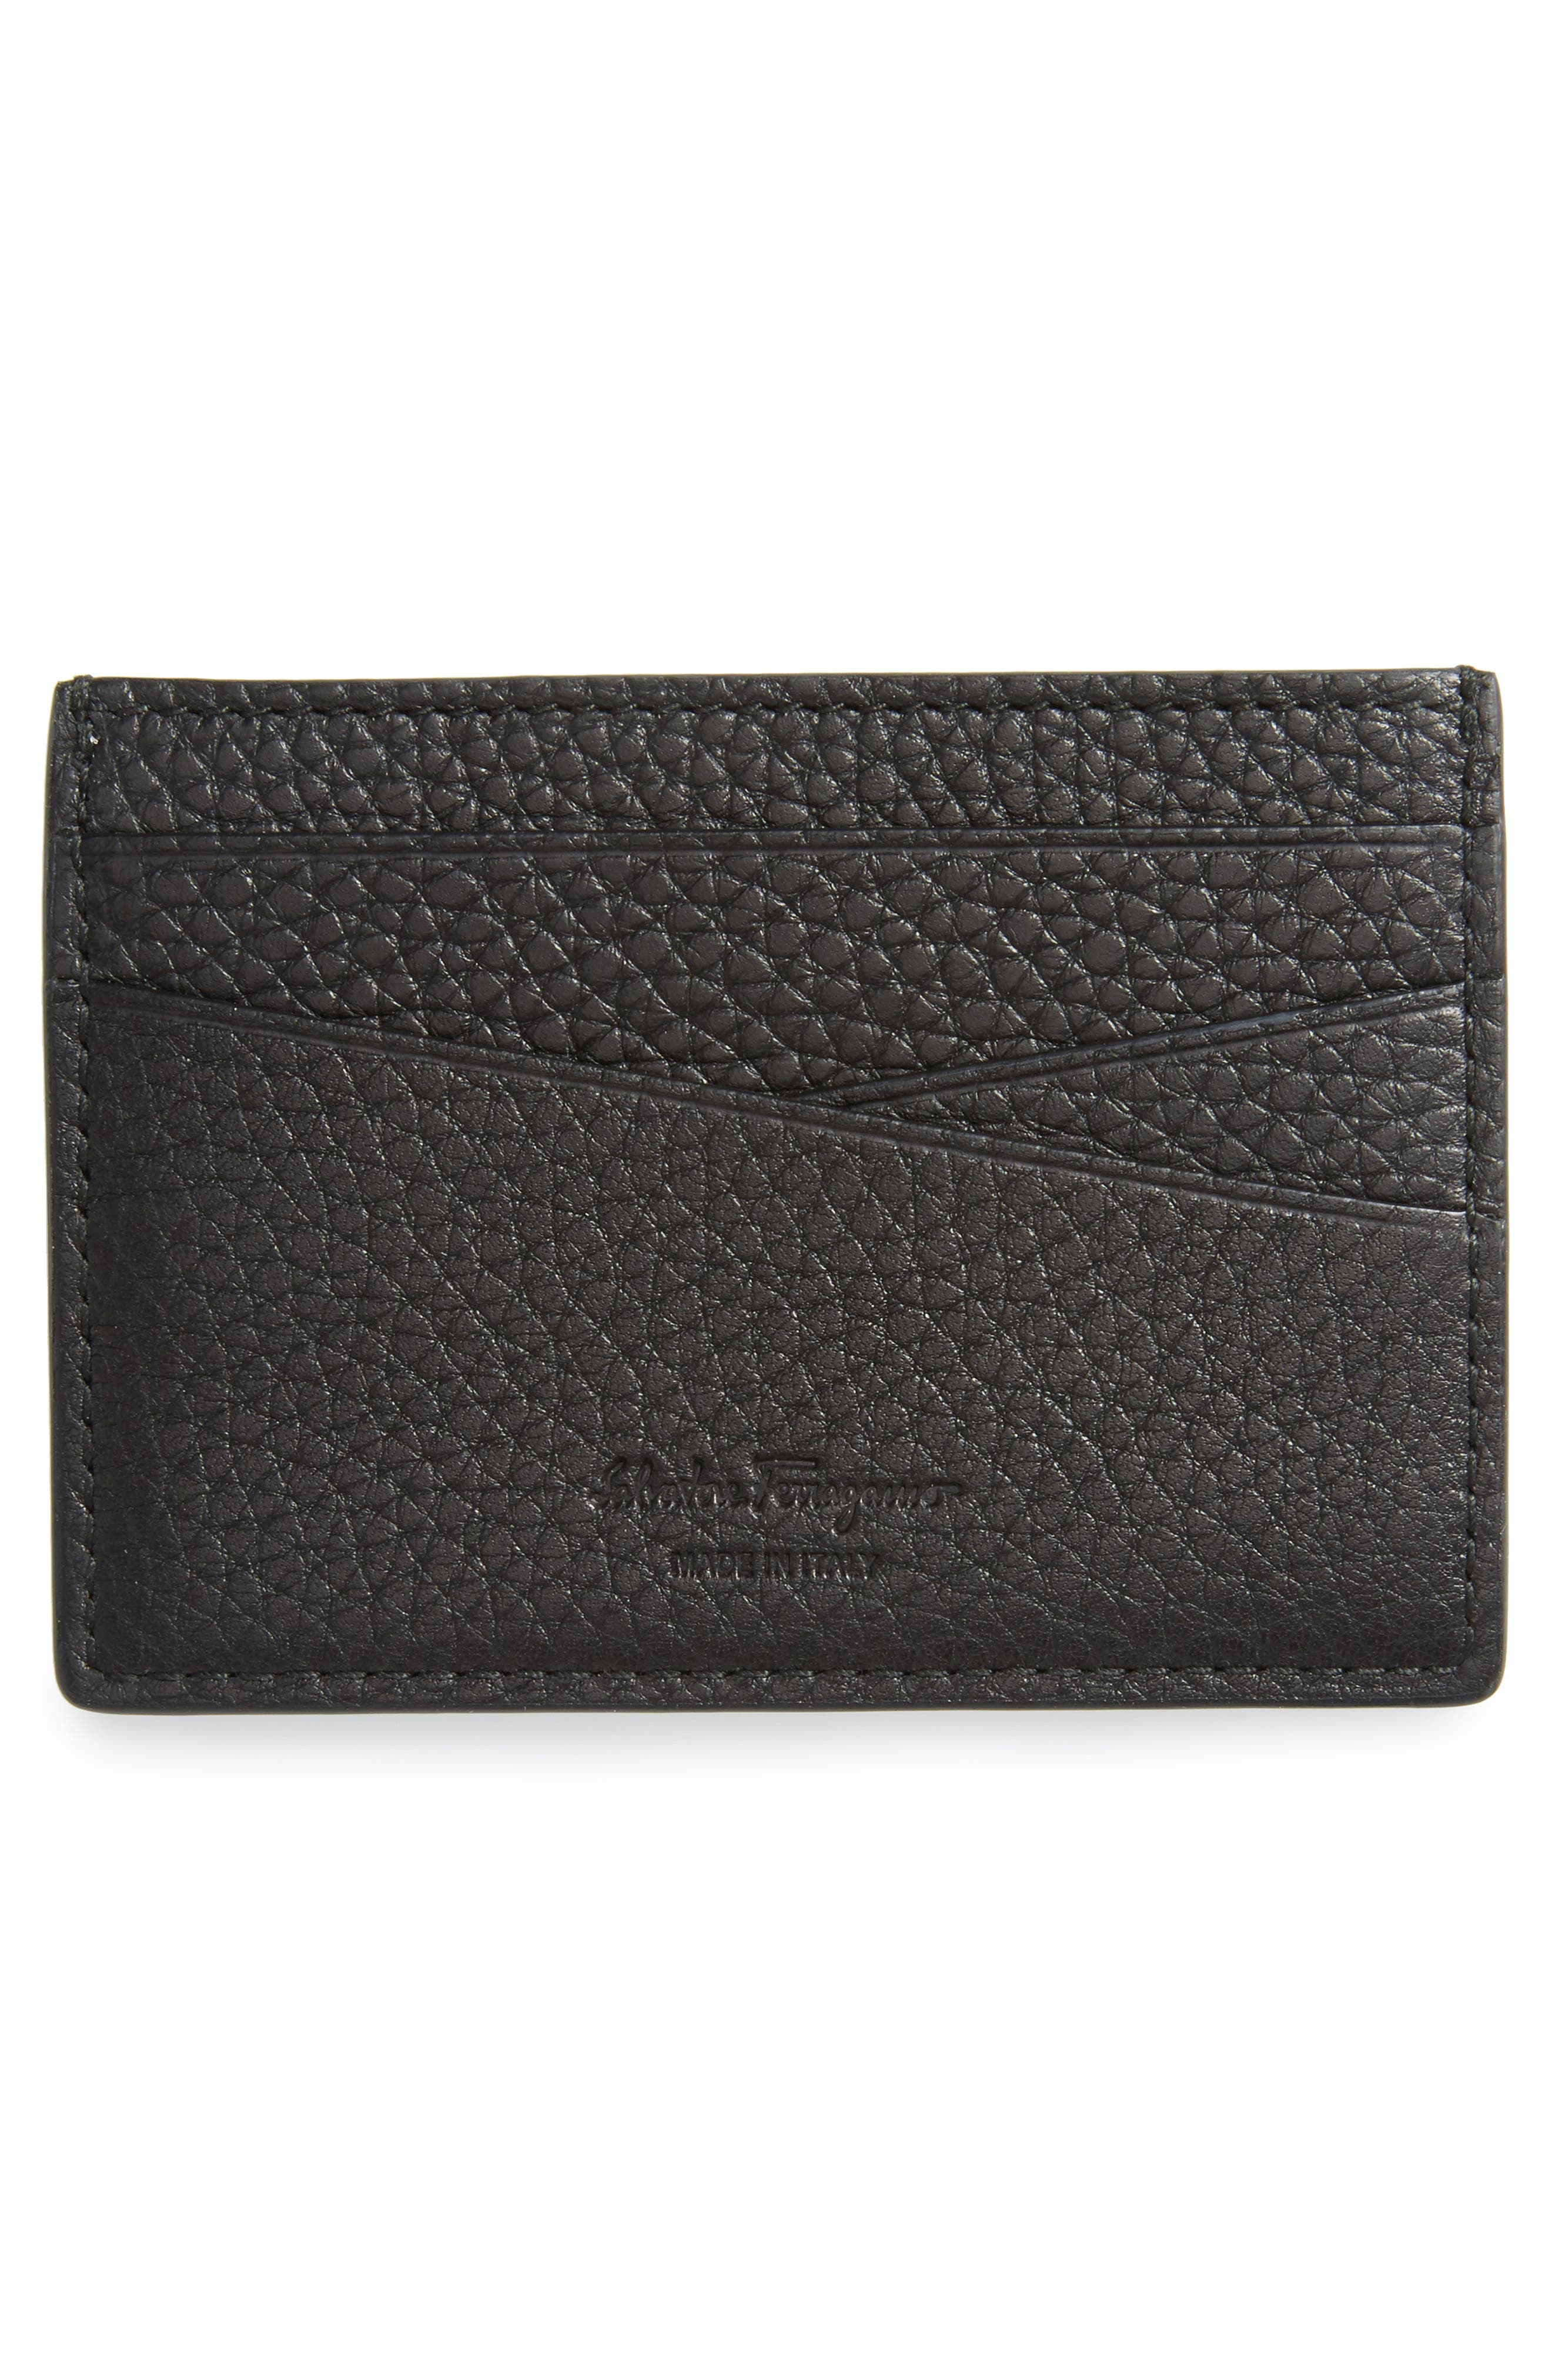 Firenze Leather Card Case,                             Alternate thumbnail 2, color,                             Black